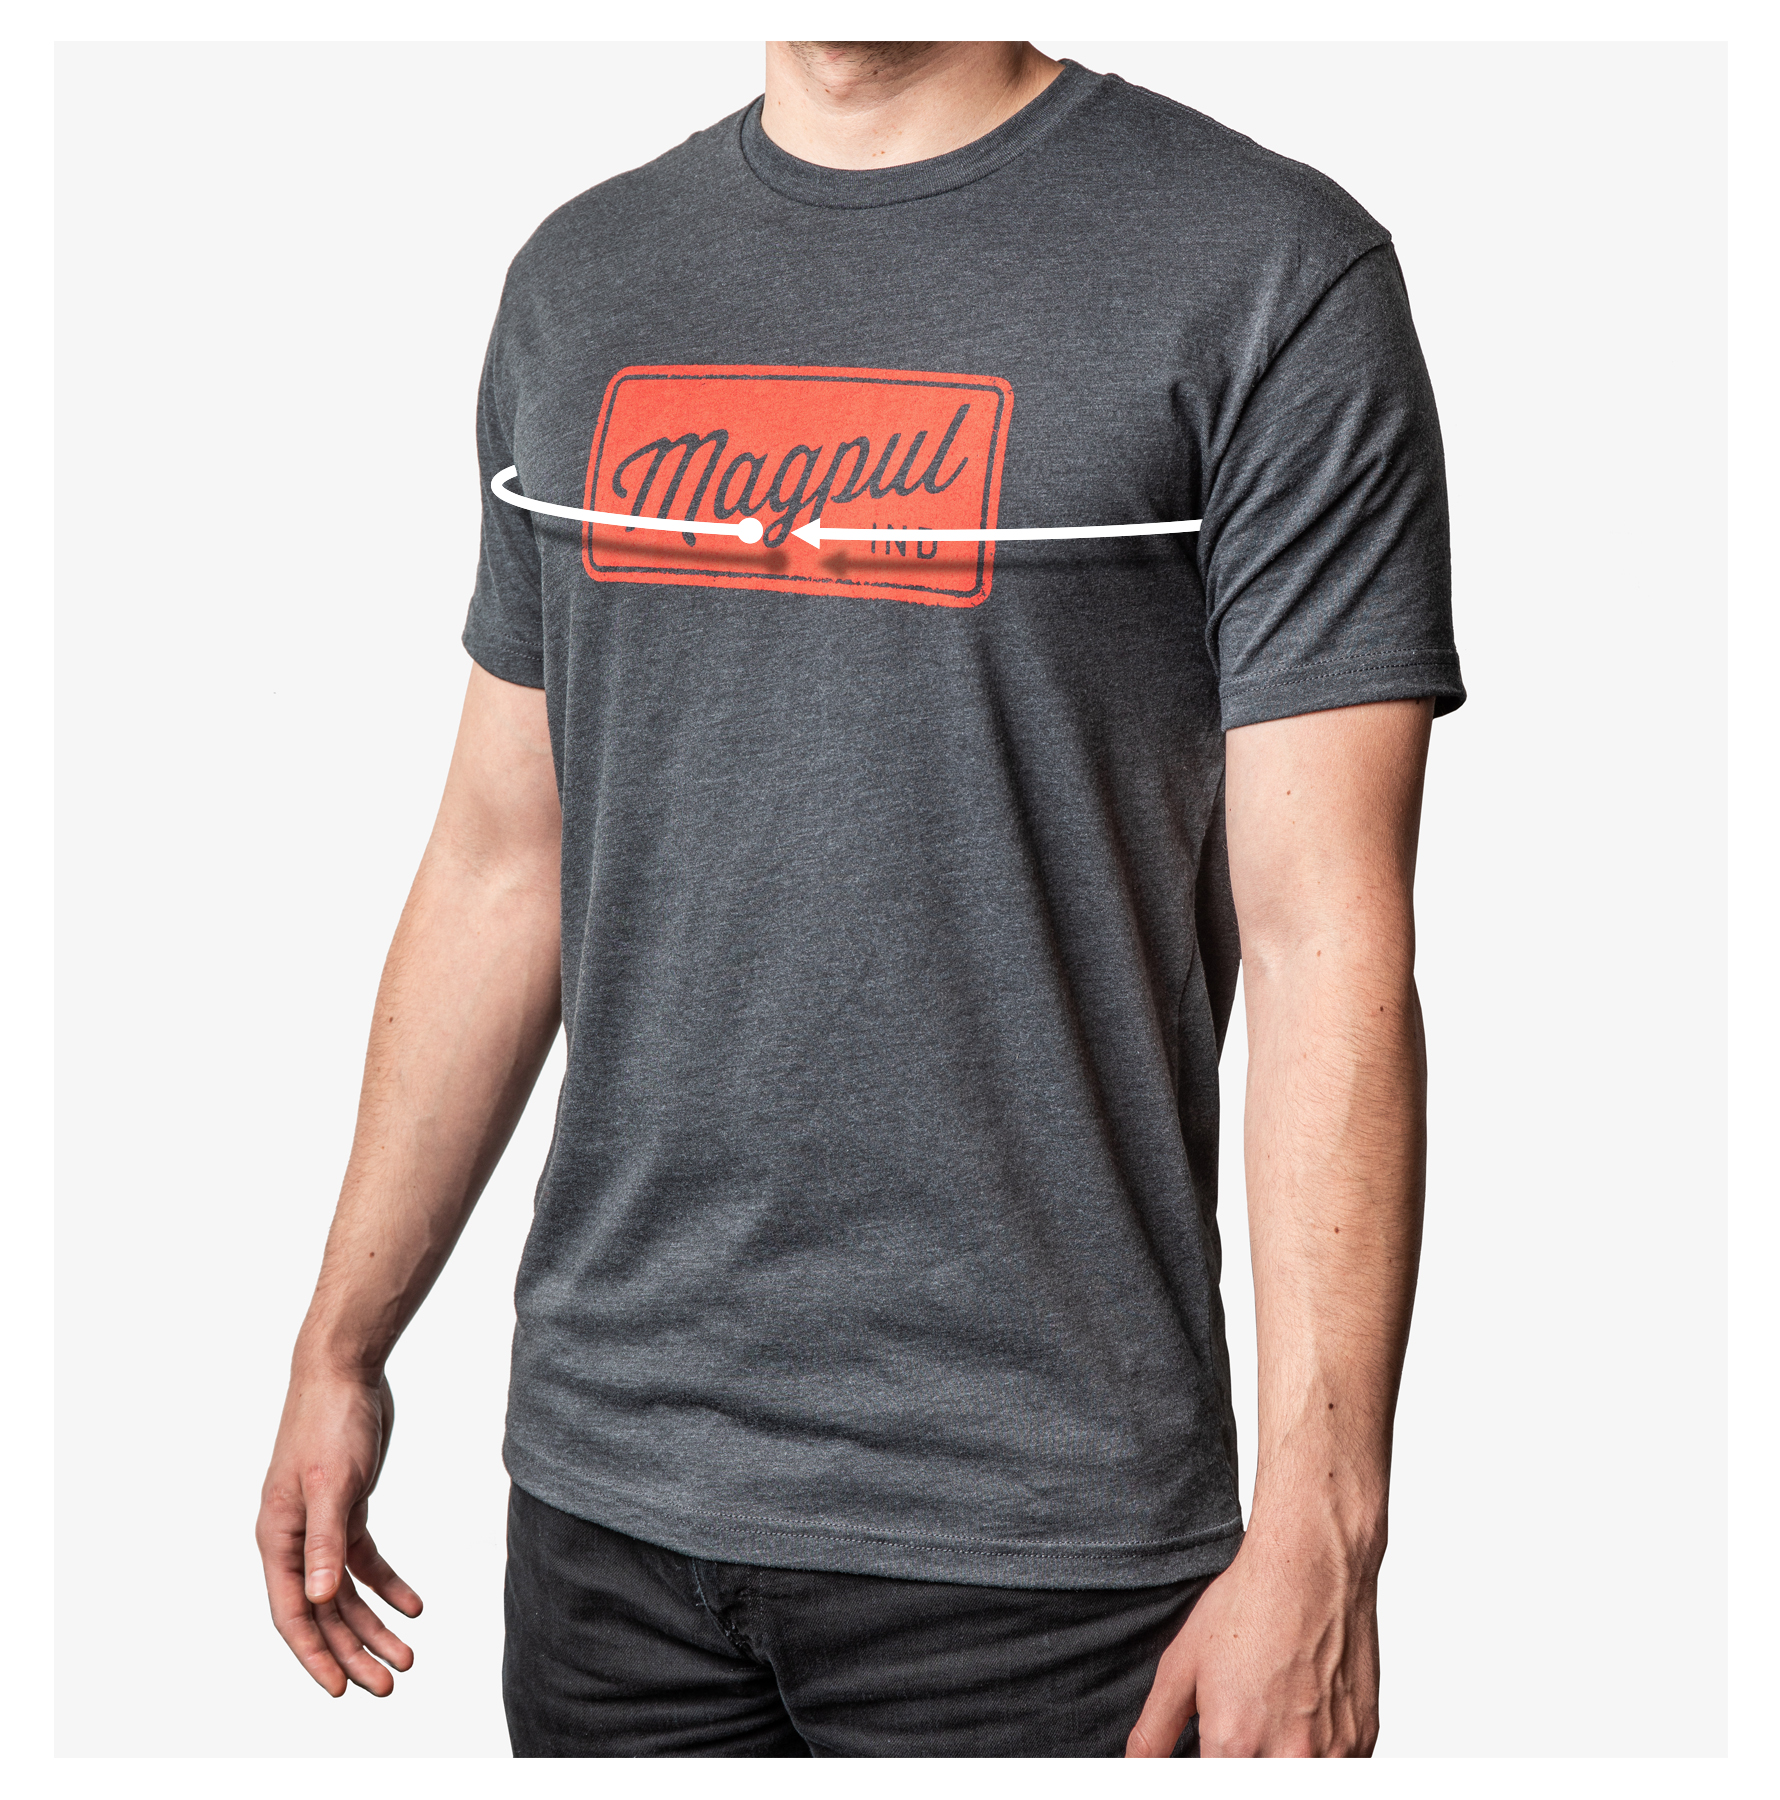 Magpul T-shirt showing where to measure for size